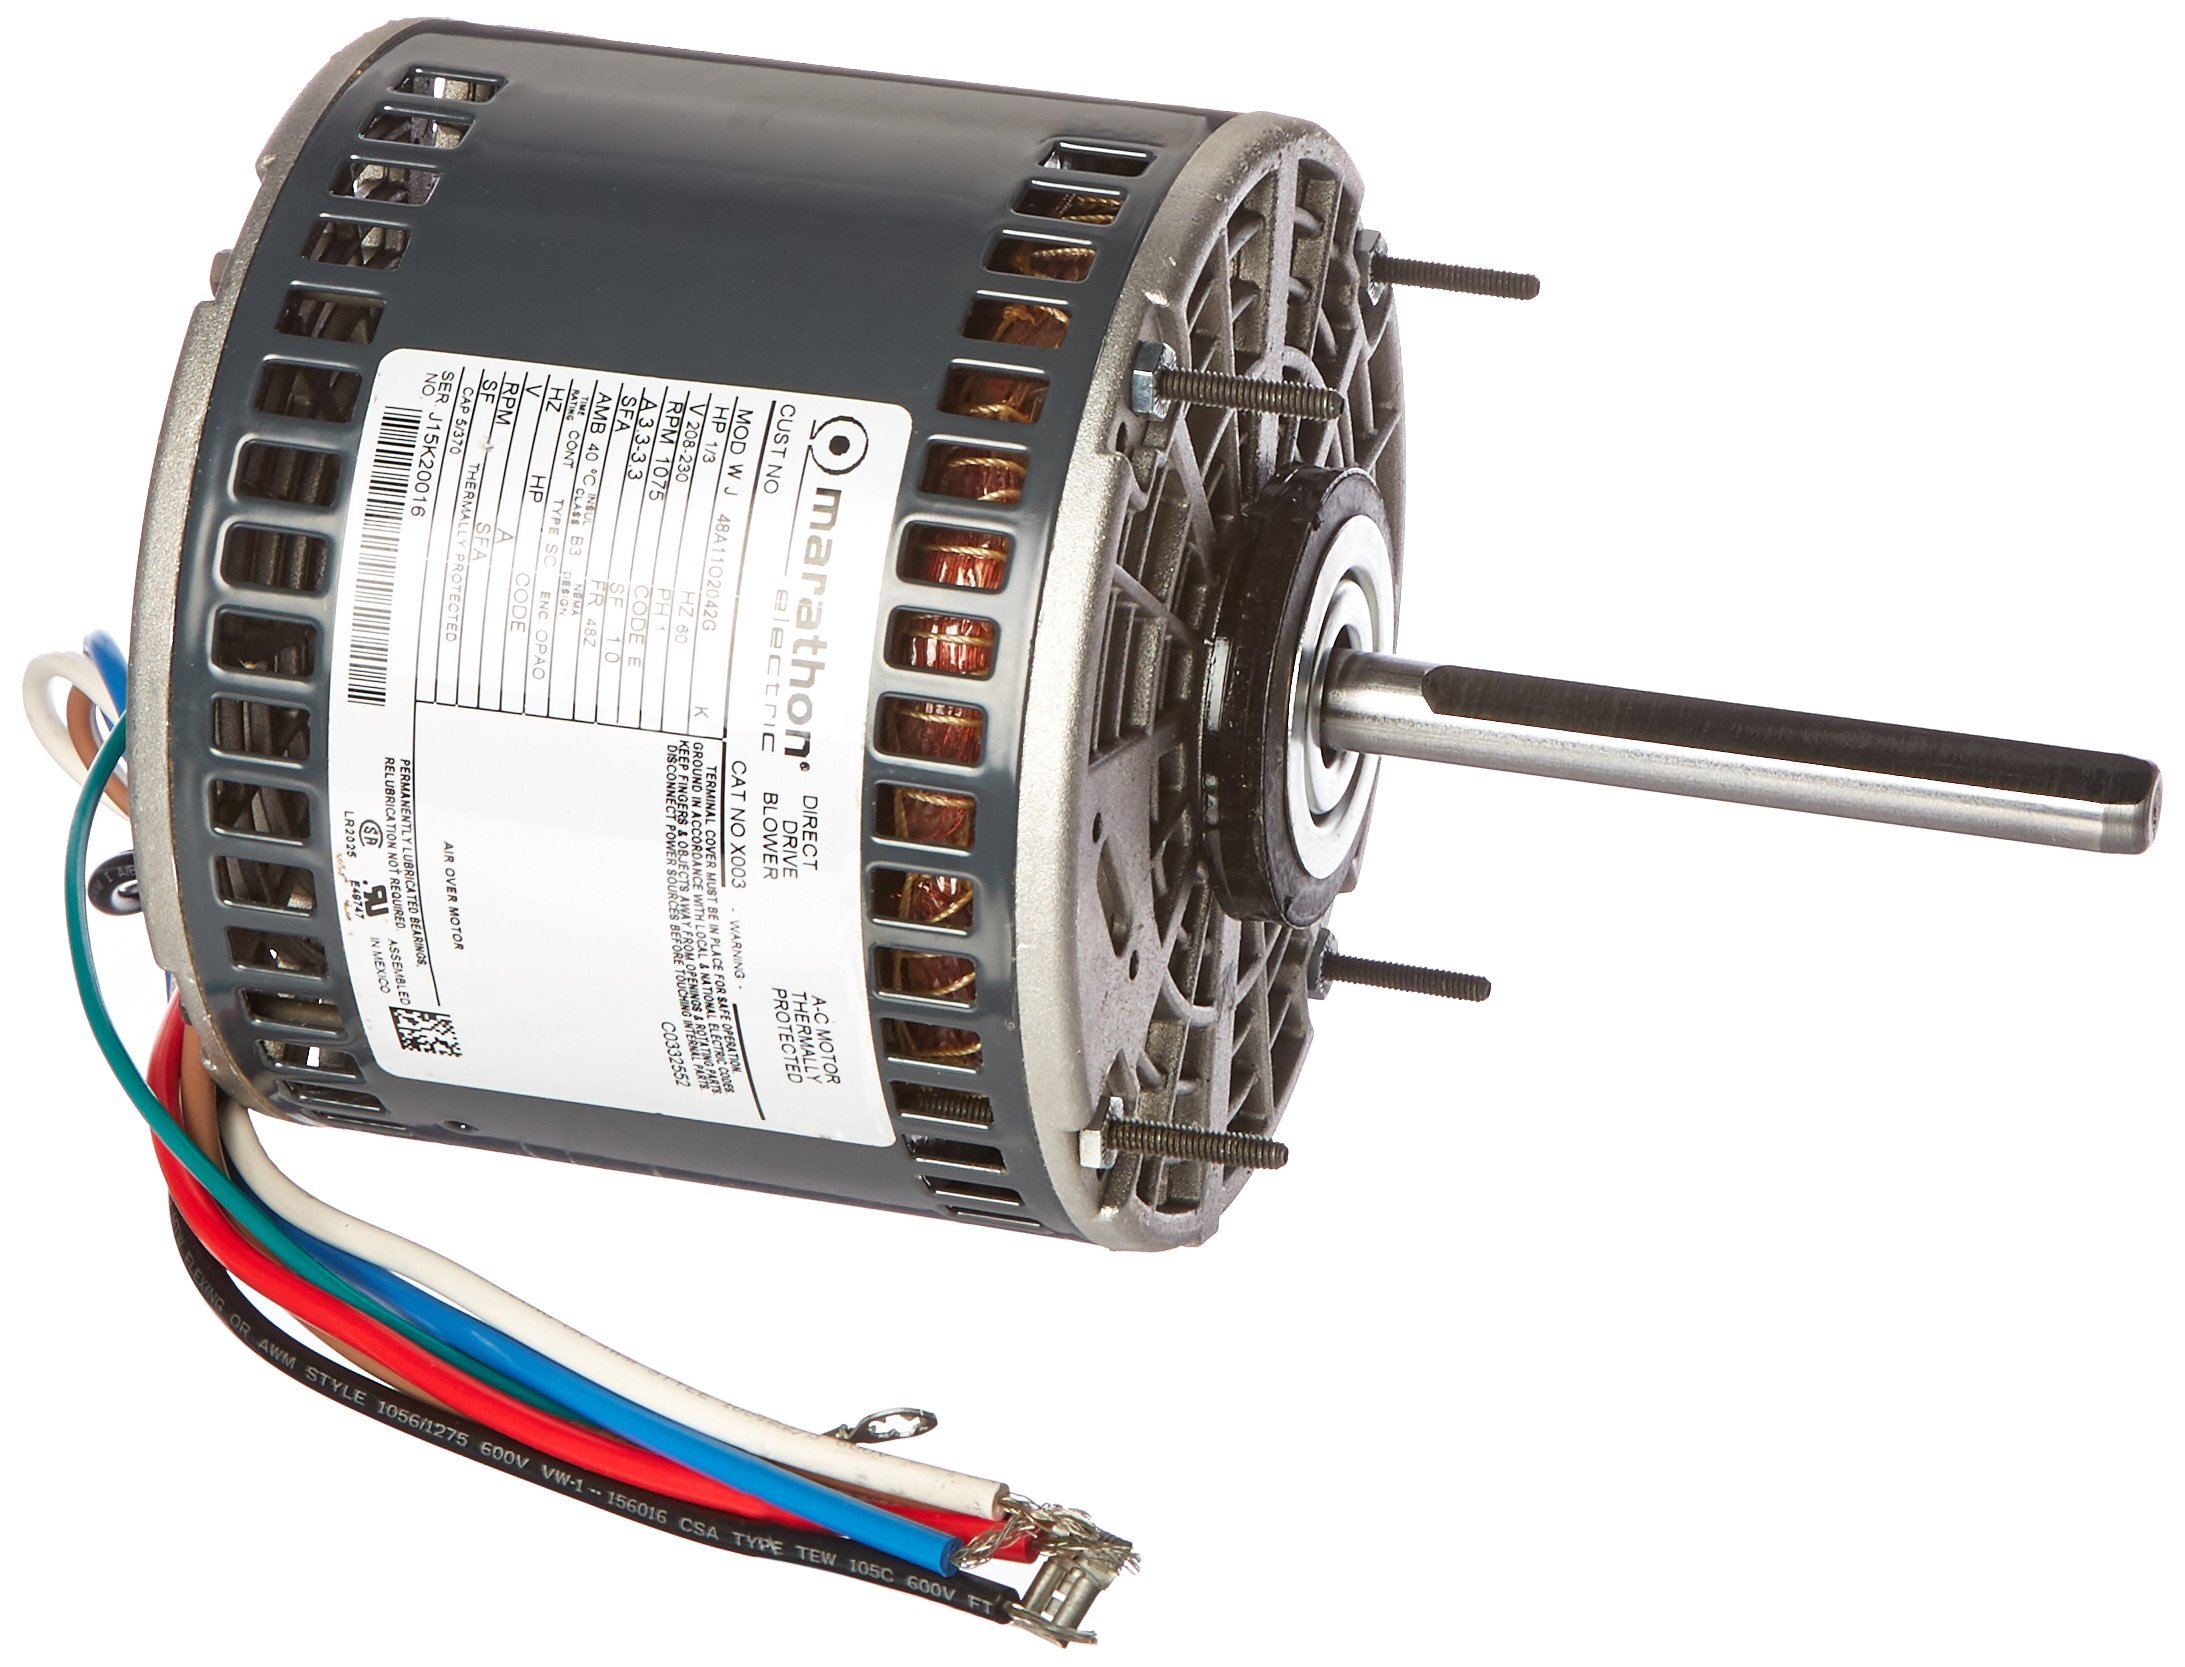 Marathon X003 48Y Frame Open Air Over 48A11OB2042 Direct Drive Motor 1/3 hp, 1075 rpm, 208-230 VAC, 1 Phase, 3 Speeds, Ball Bearing, Permanent Split Capacitor, Thru-Bolt